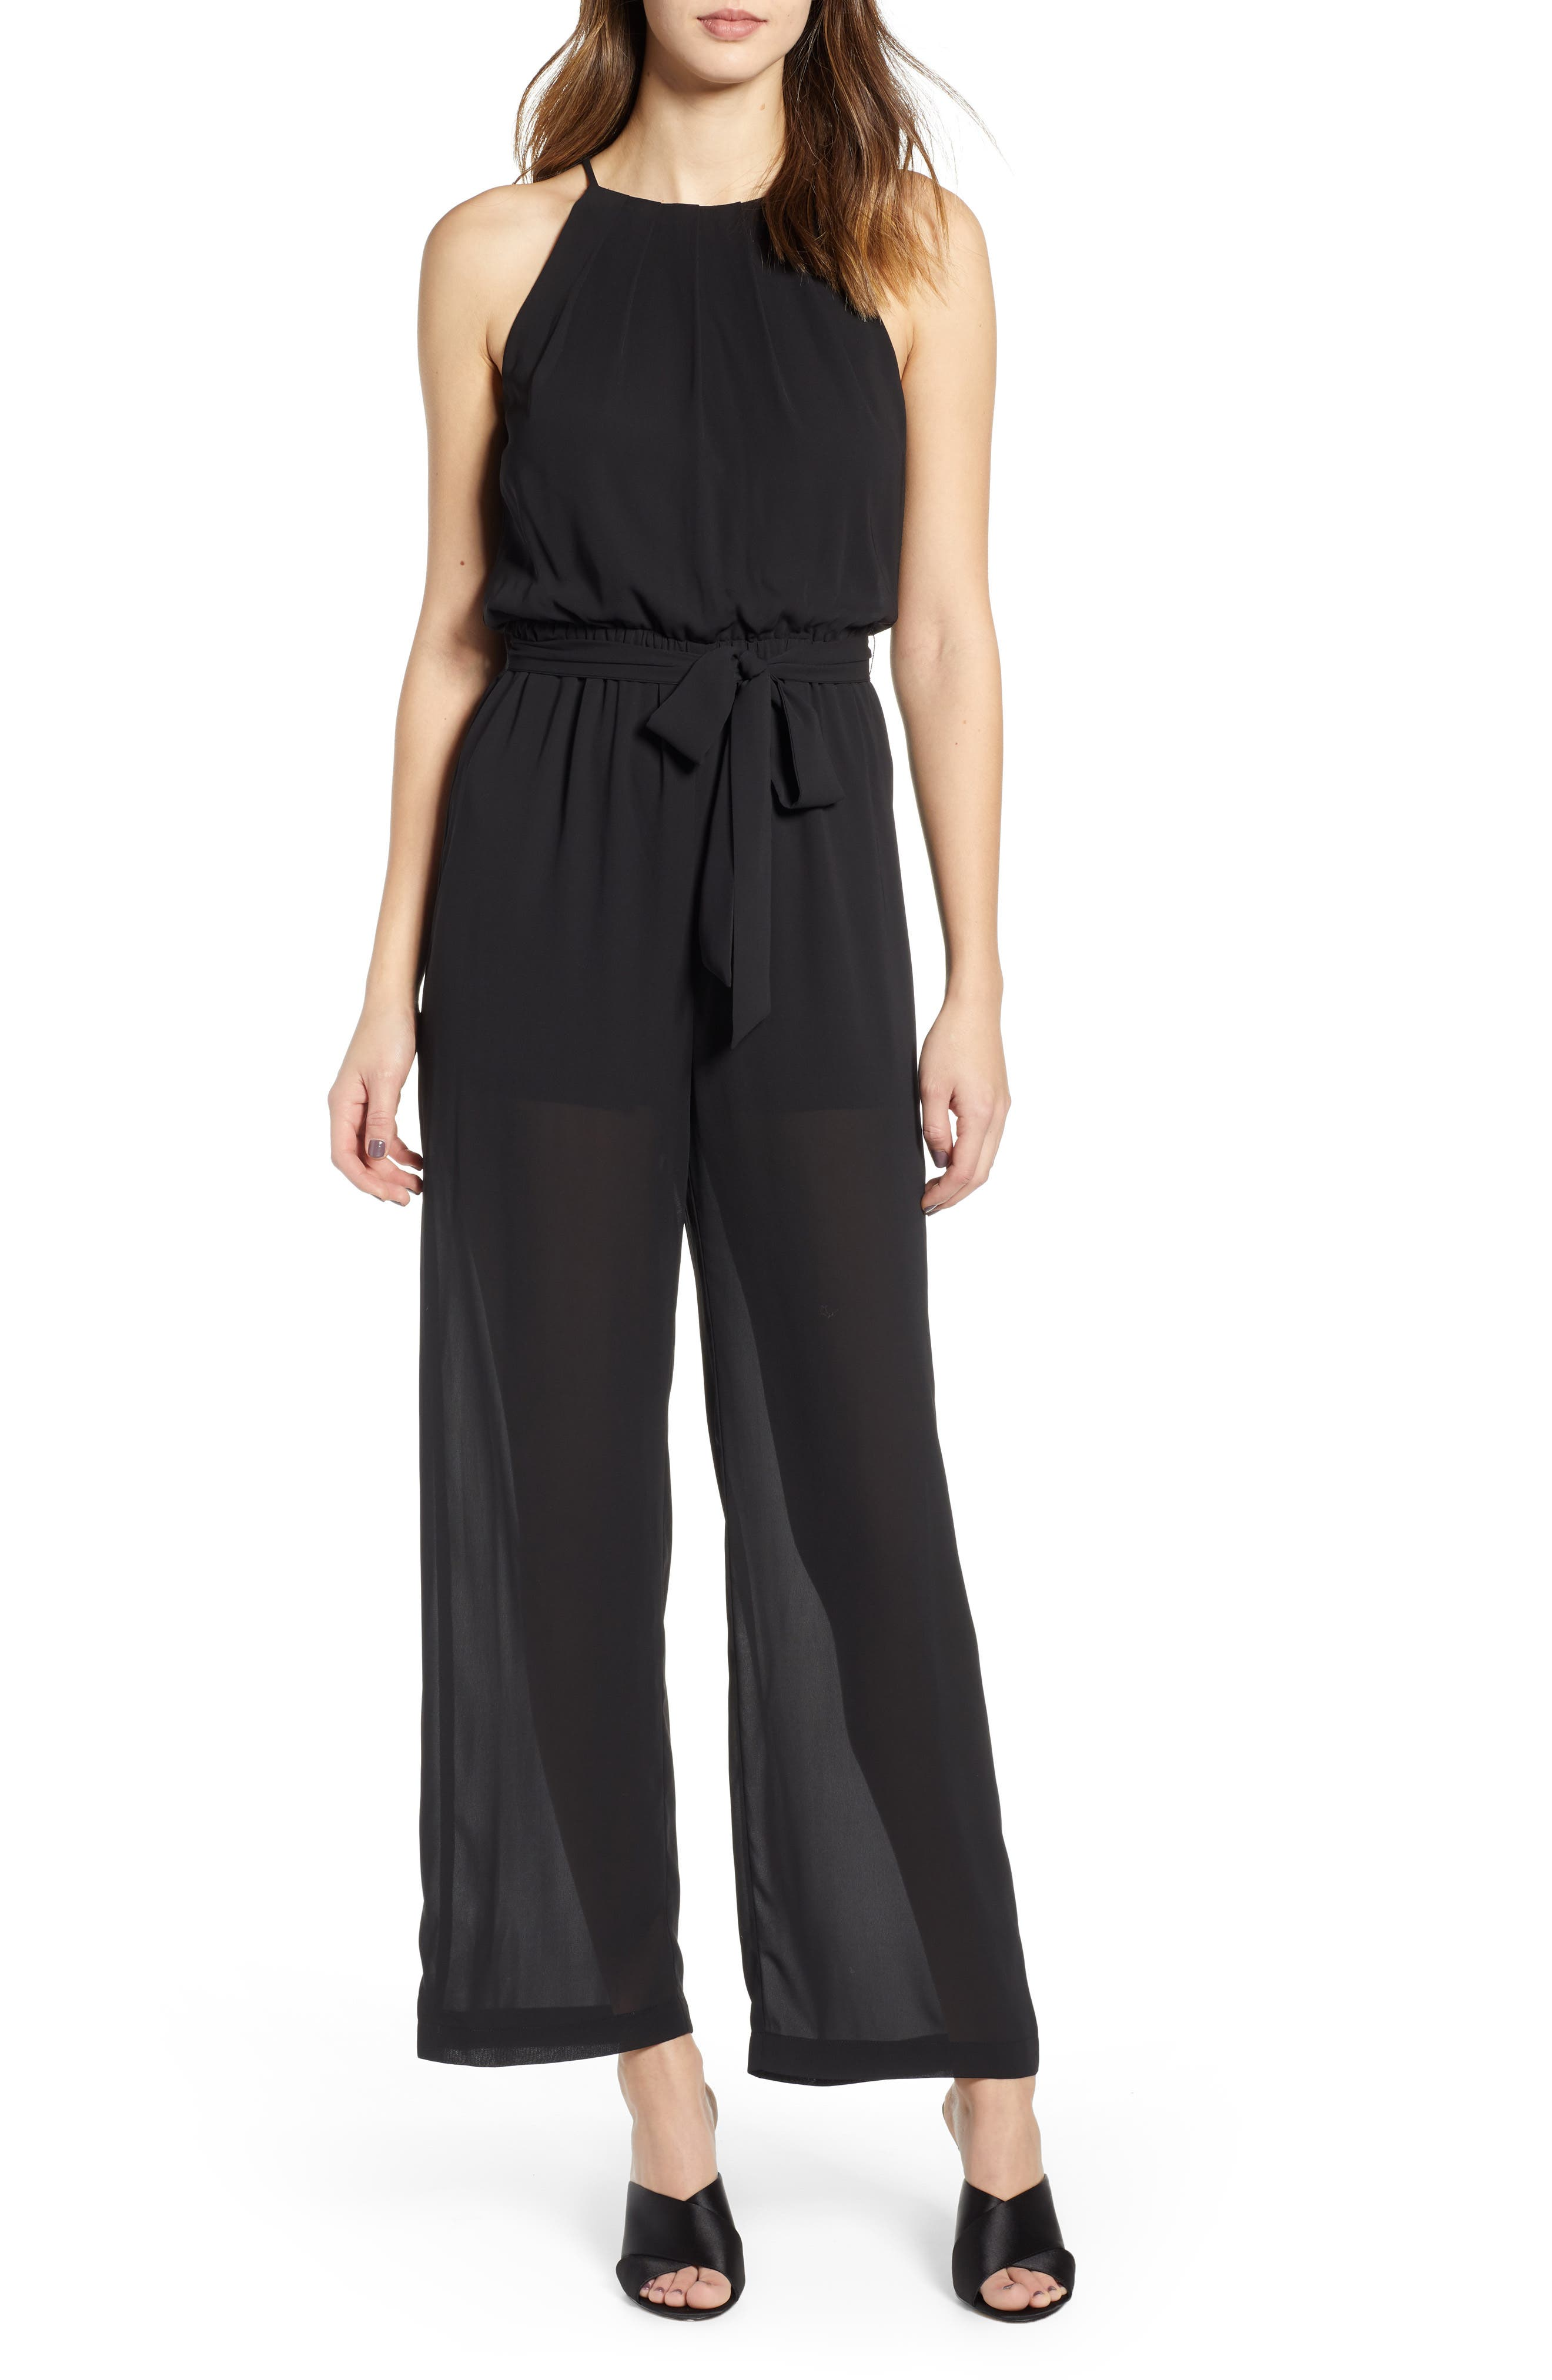 ALL IN FAVOR Blouson Chiffon Jumpsuit, Main, color, BLACK